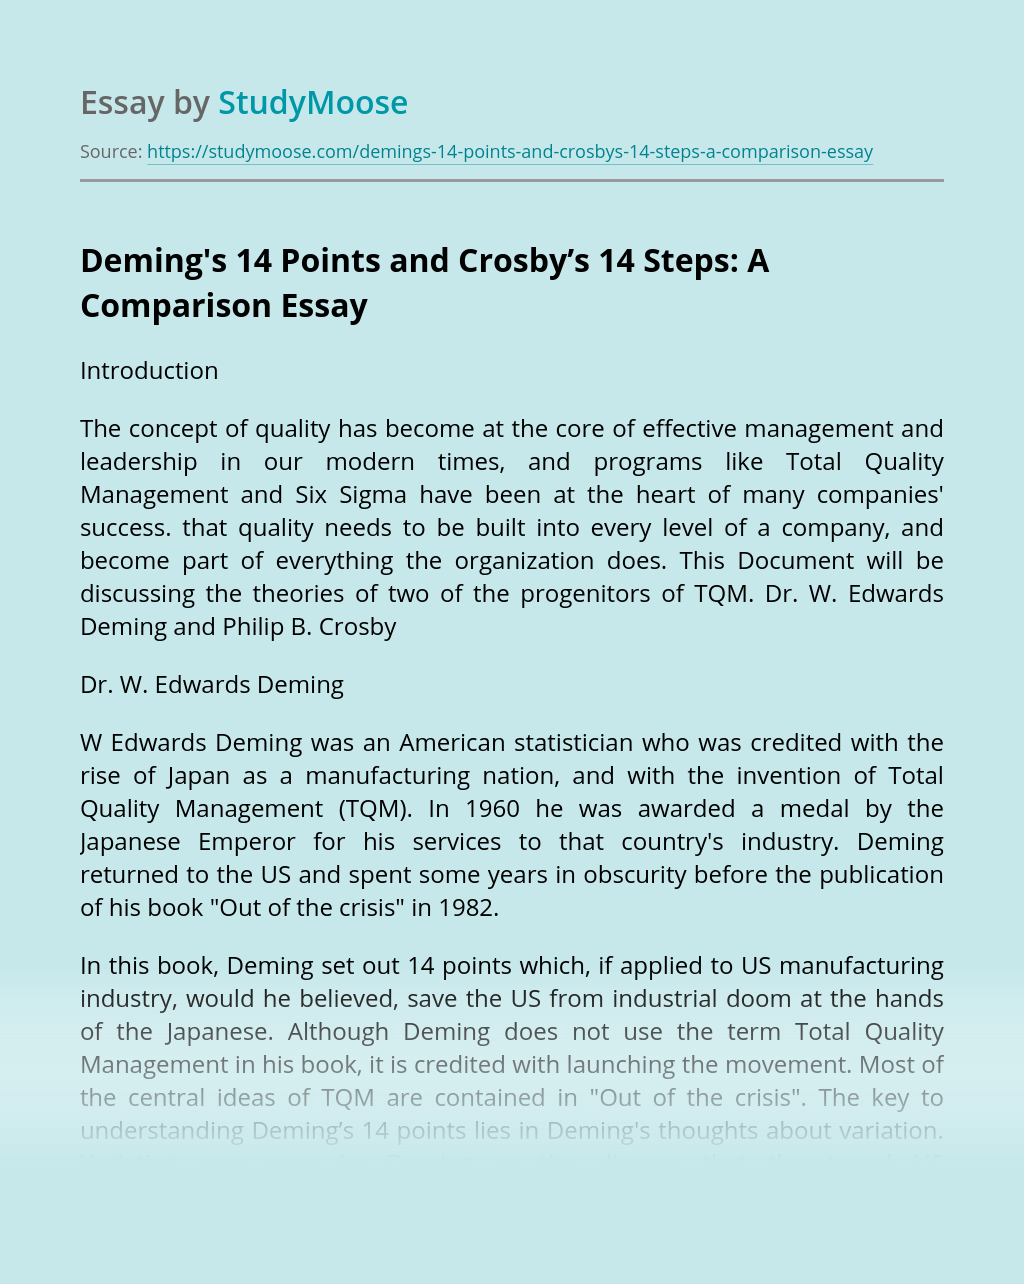 Deming's 14 Points and Crosby's 14 Steps: A Comparison